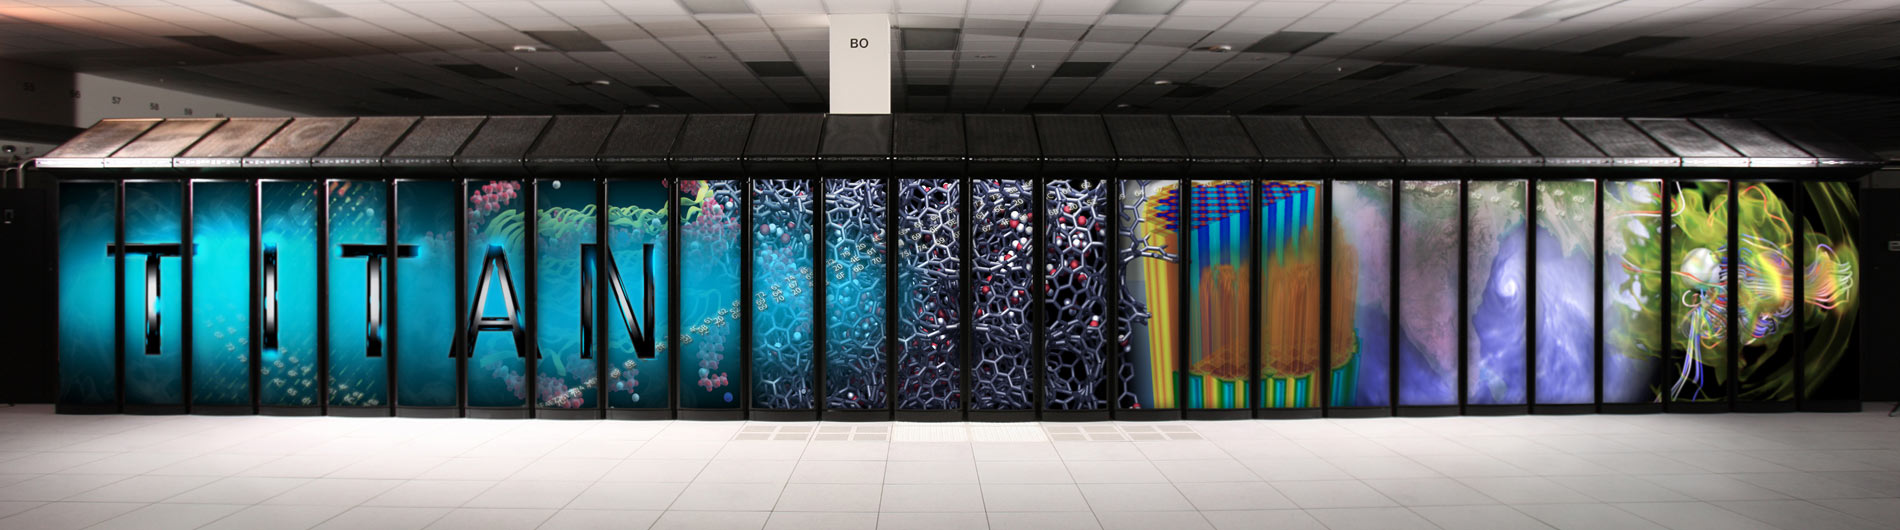 Future of supercomputers